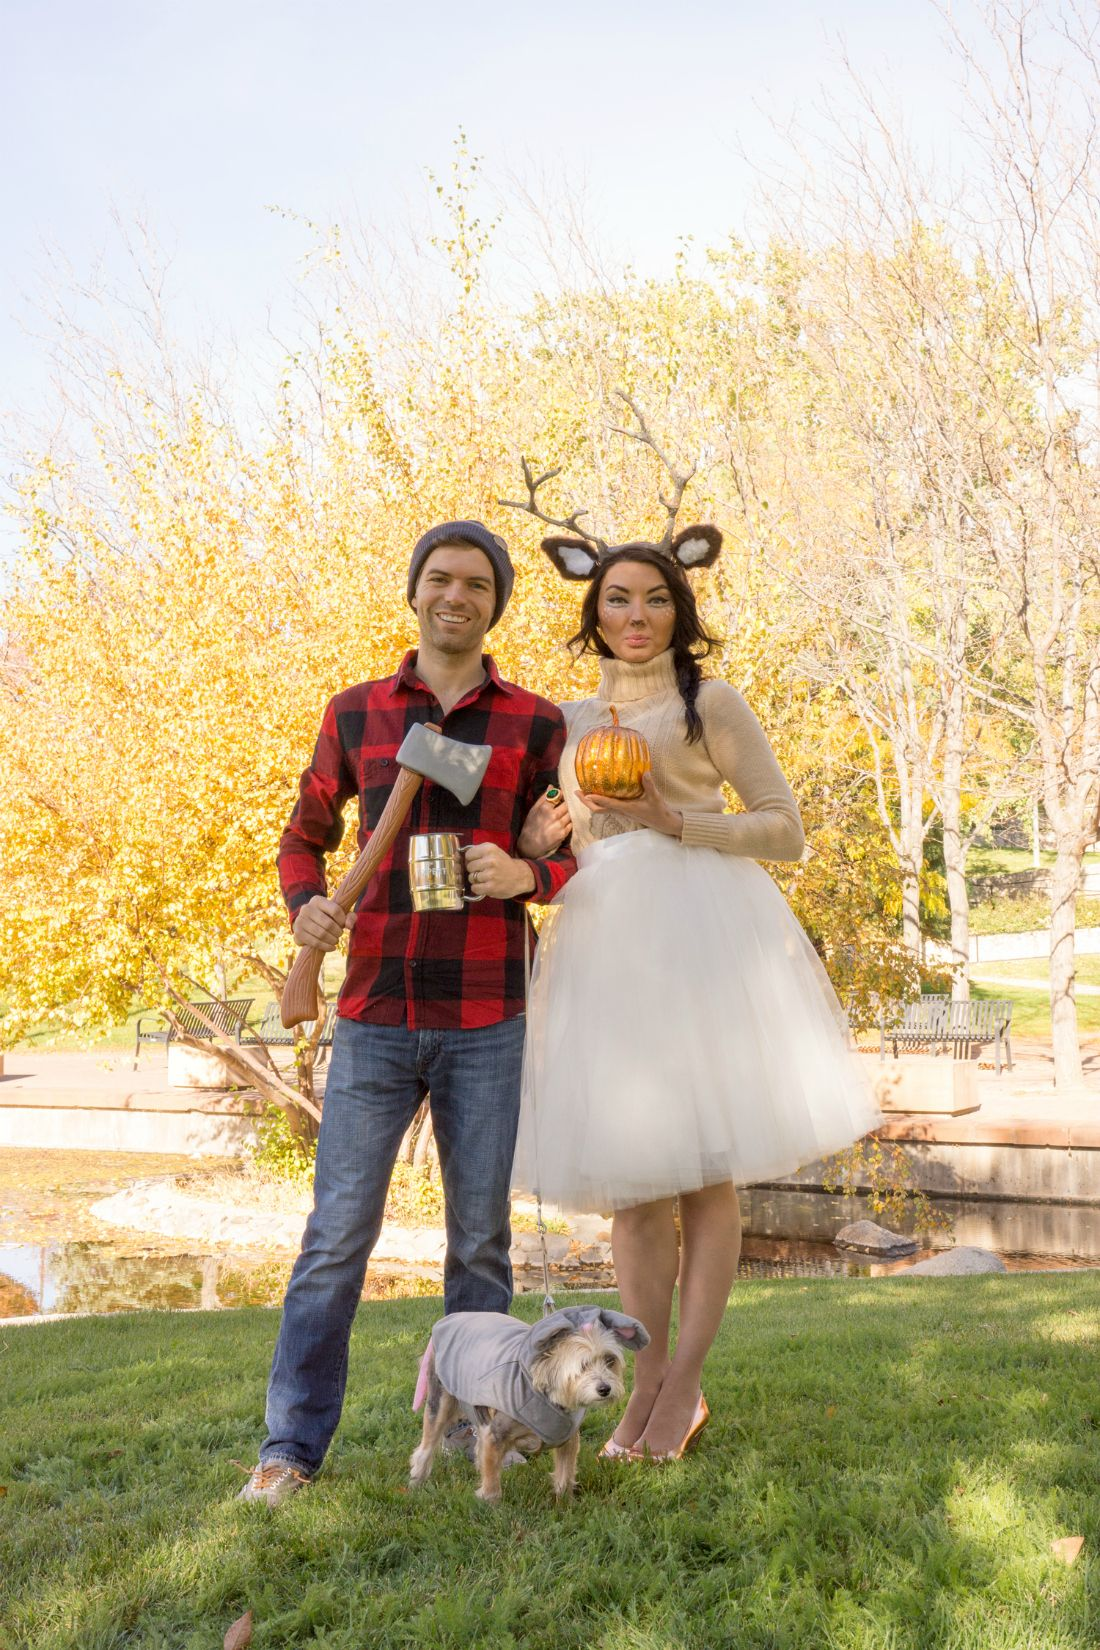 woodland deer and lumberjack couples costume | halloween | pinterest